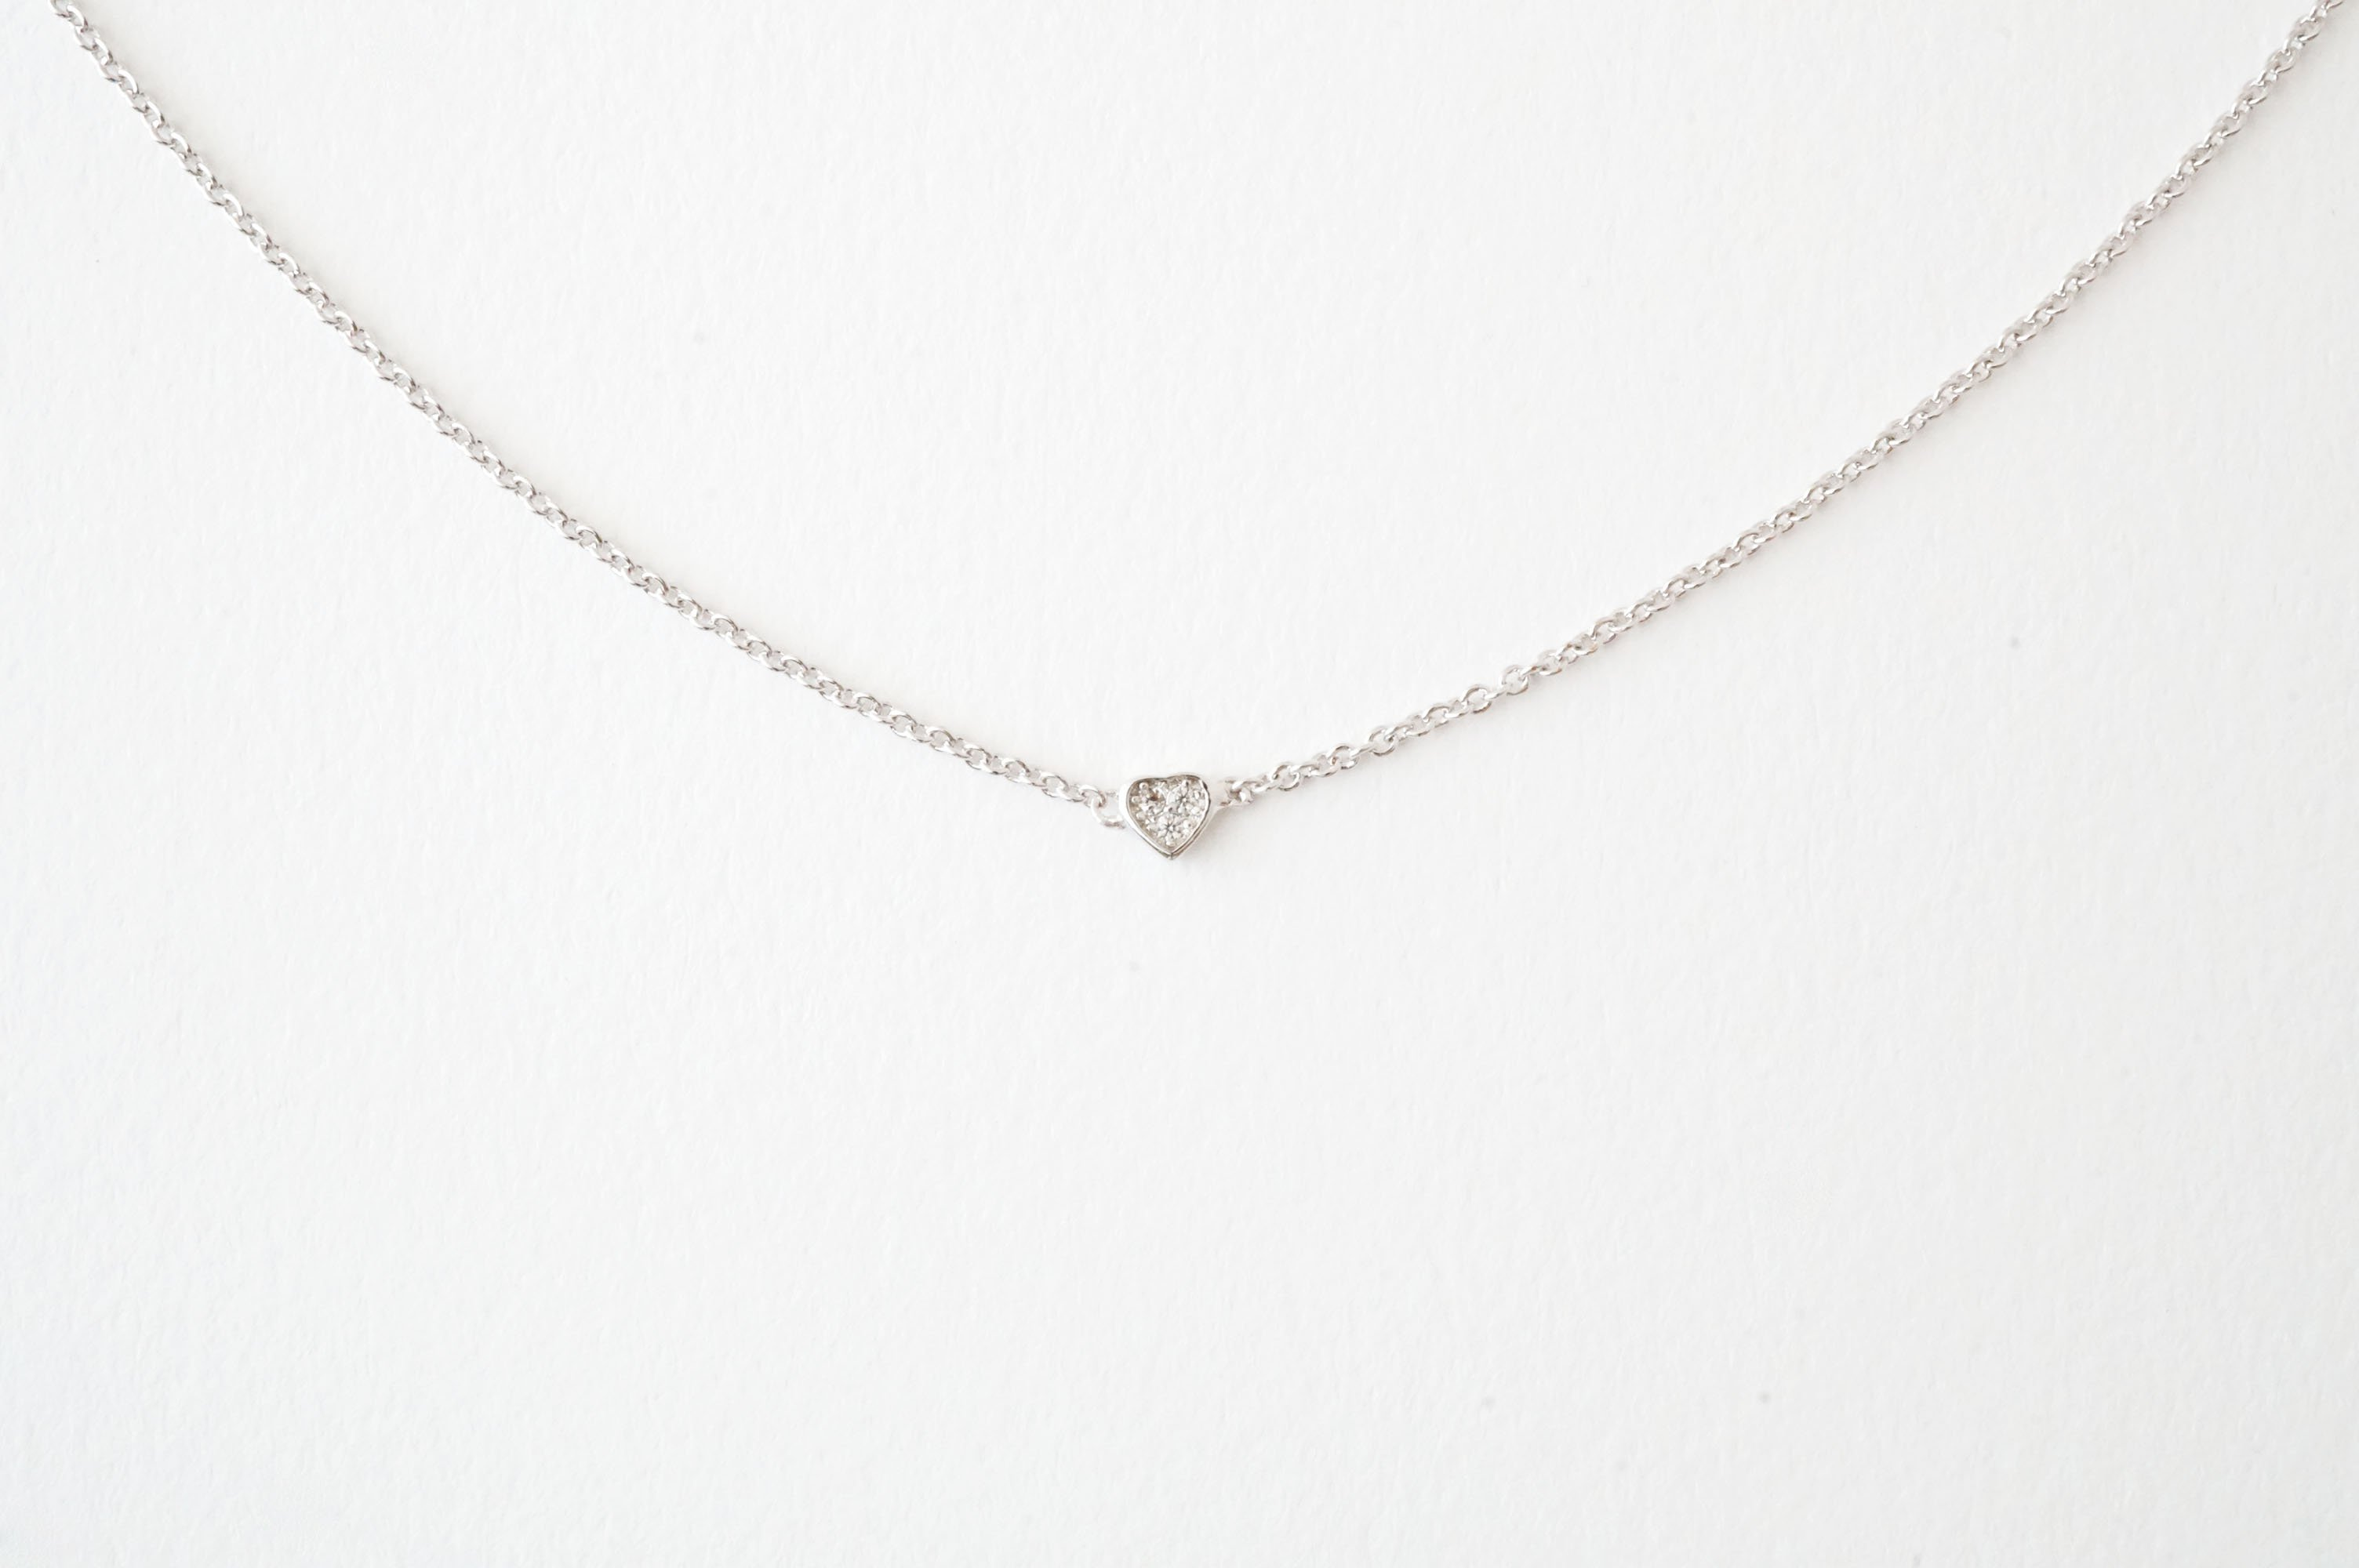 heartmininecklacehover charm heart mini mamaloves necklace